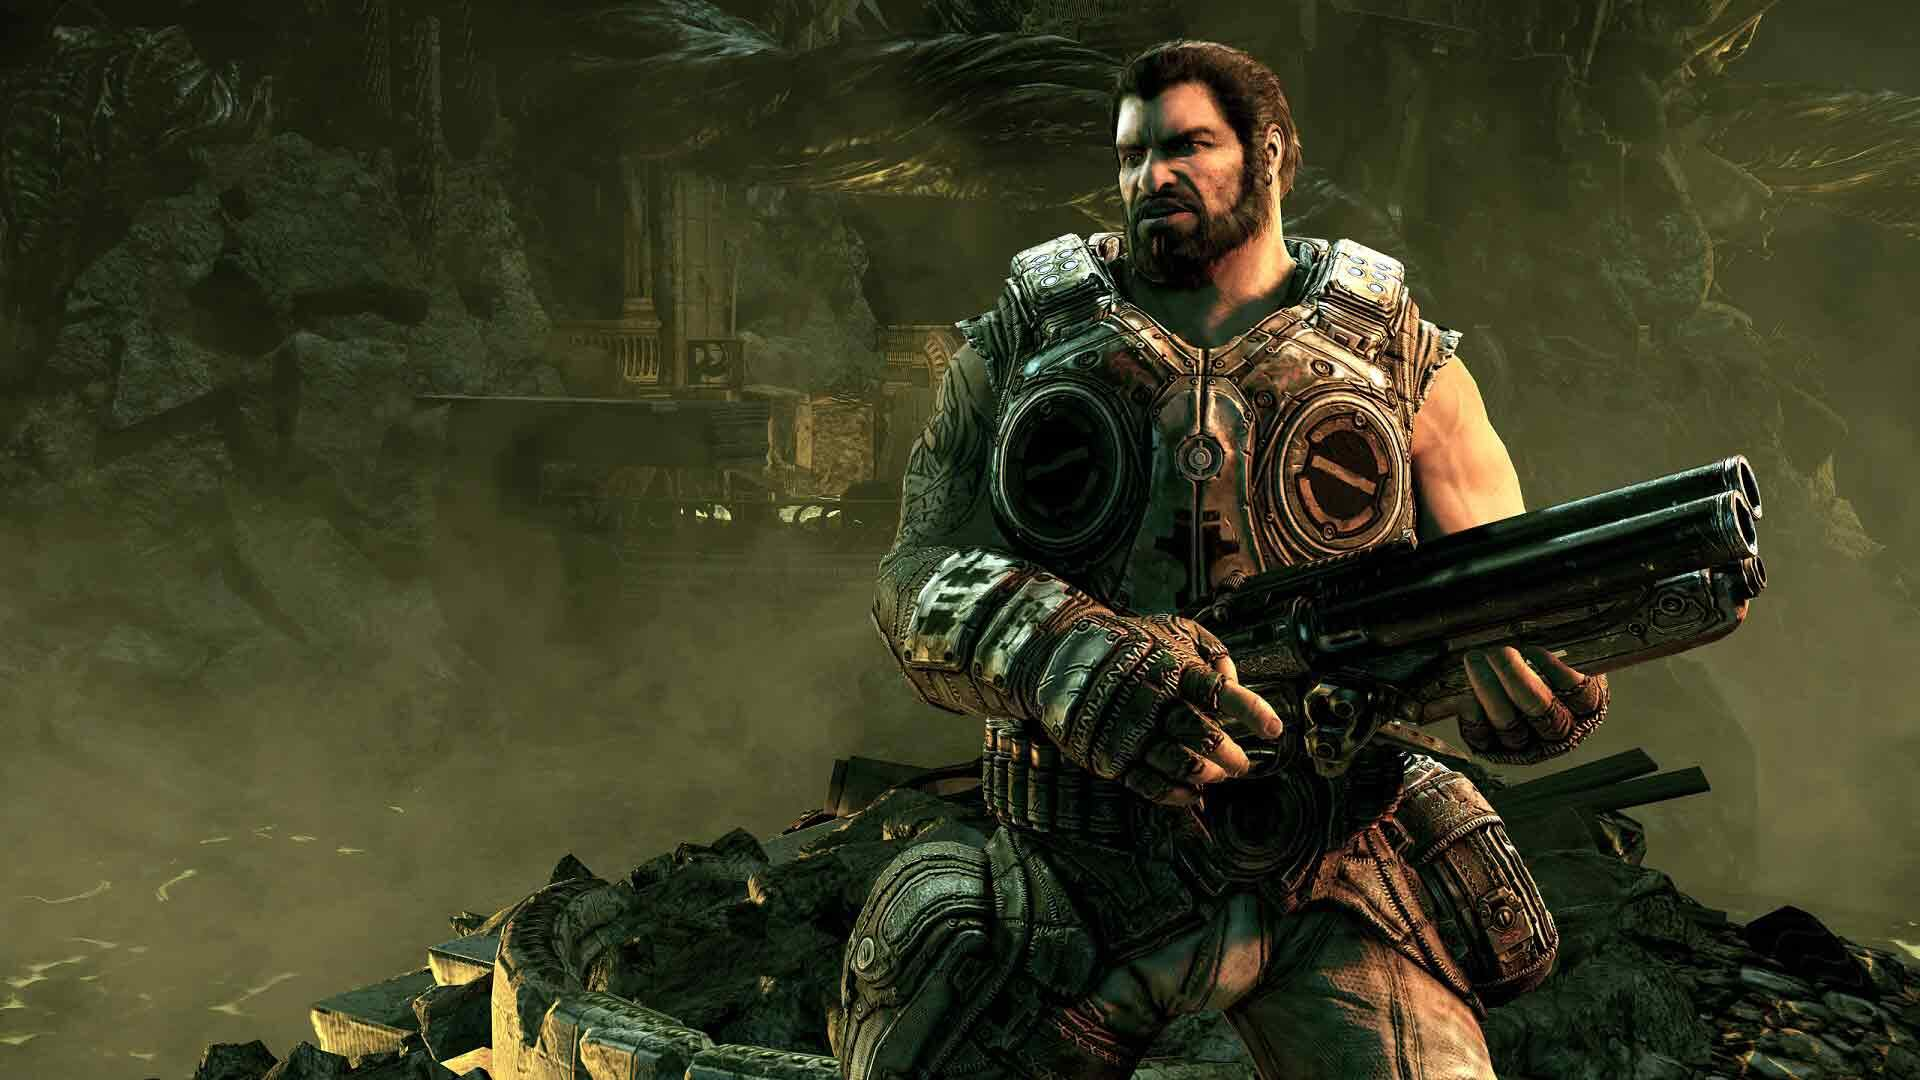 Gears of War - Dominic Santiago